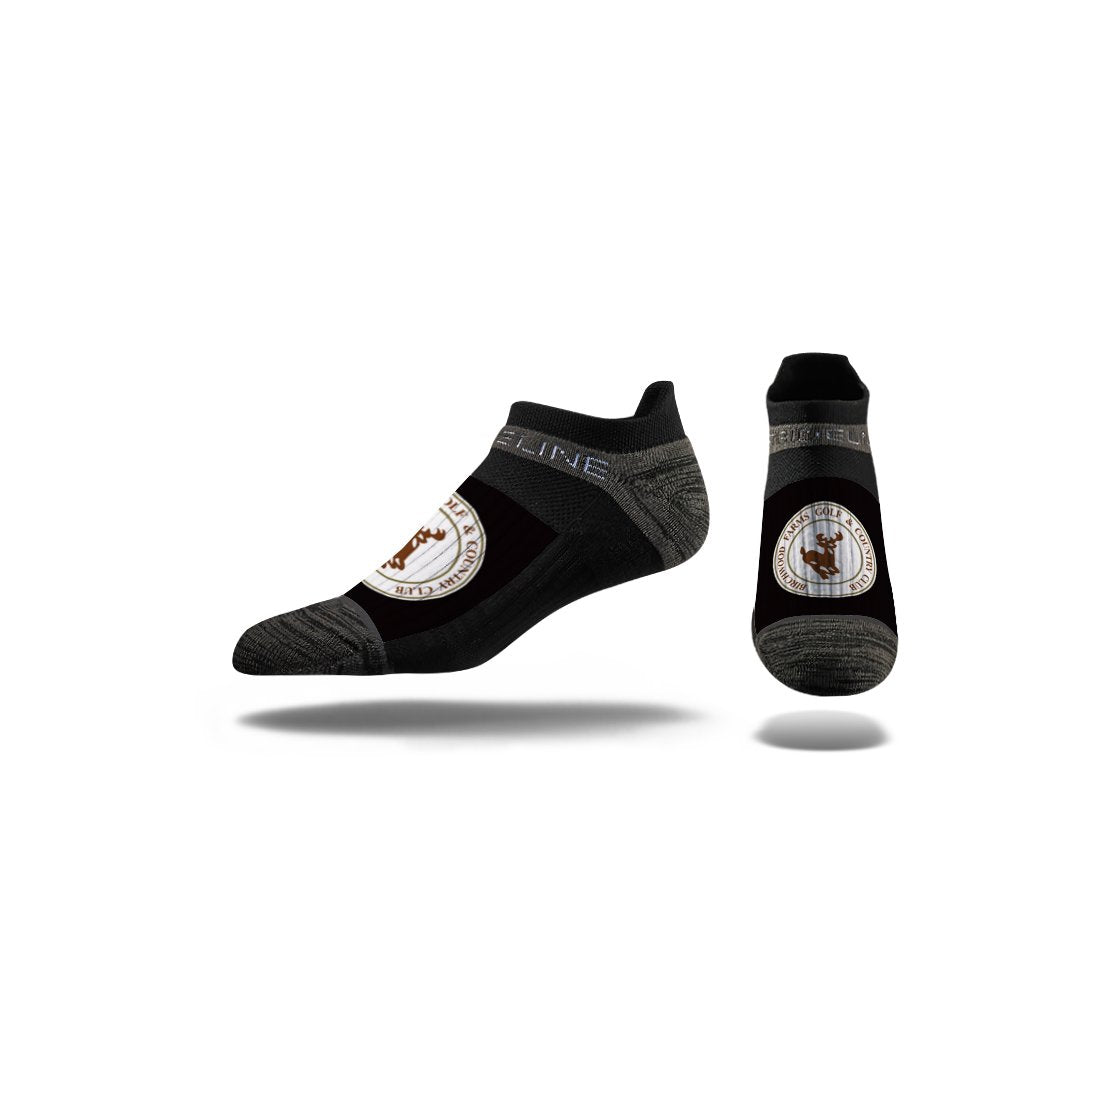 Birchwood Farms Golf & Country Club Black Premium Low N01575466ML